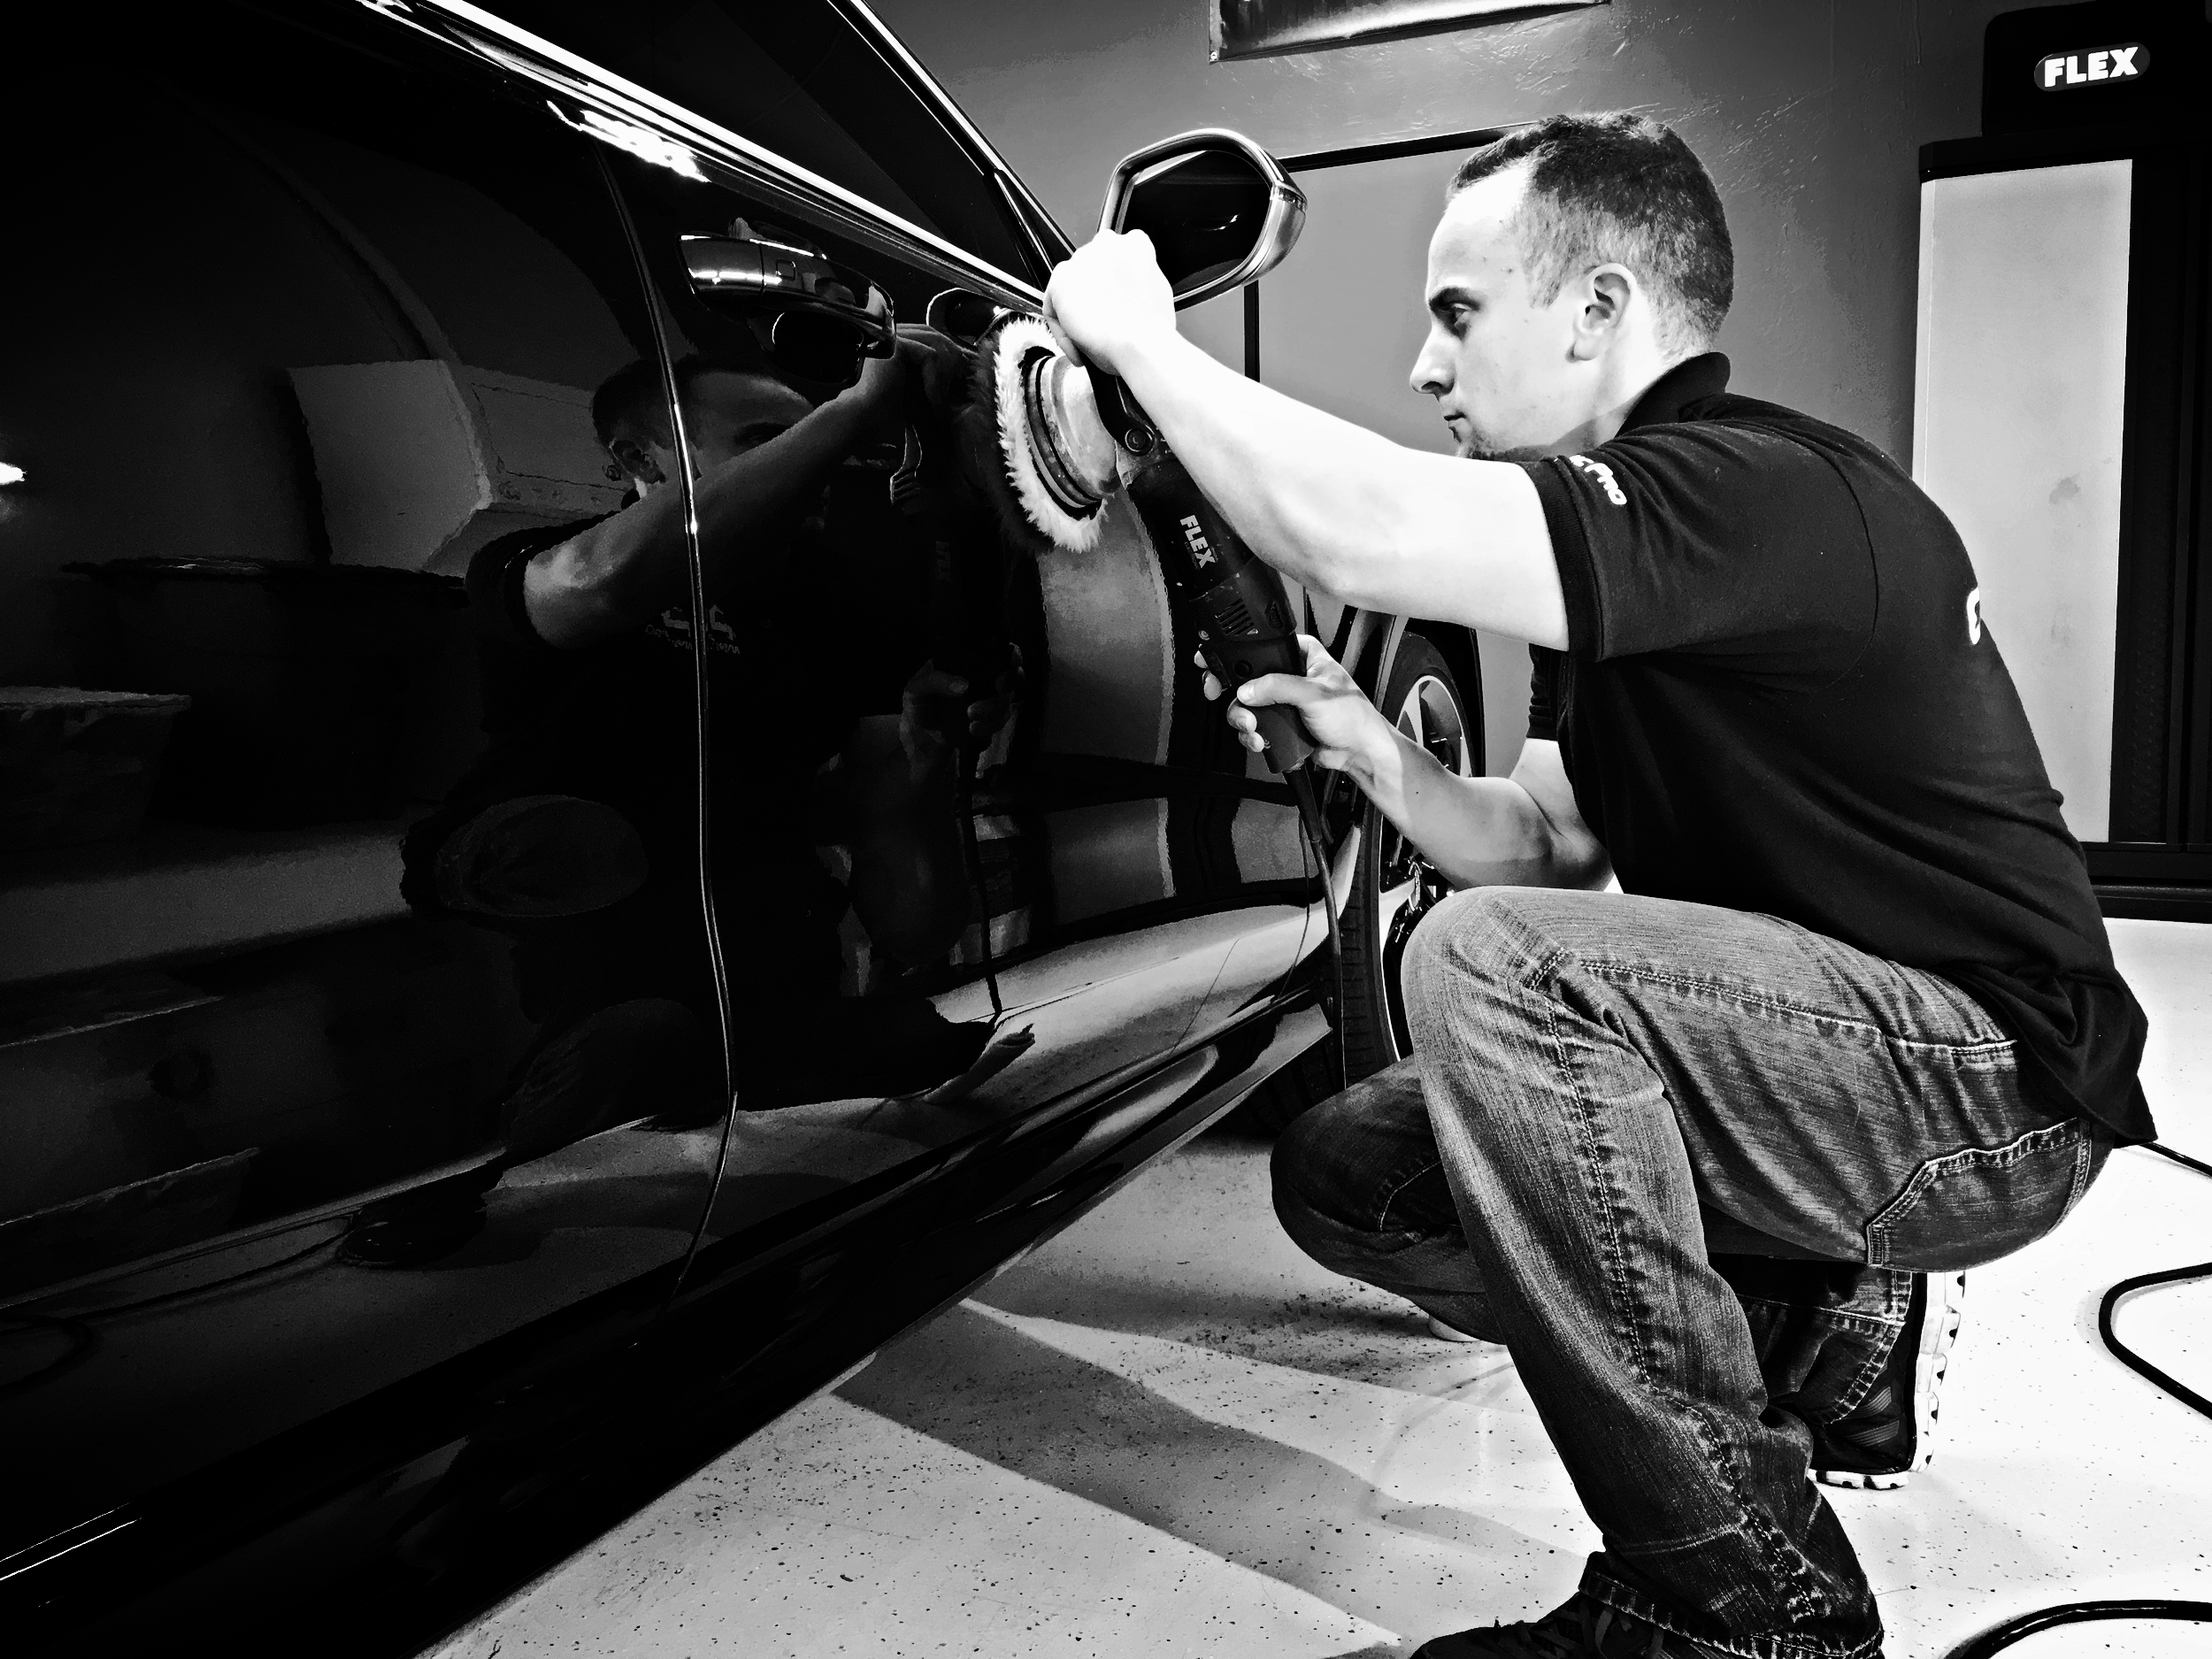 Co-owner Chris Parker performing the first stage of paint correction in the Deluxe Stage 2 Paint Correction Process